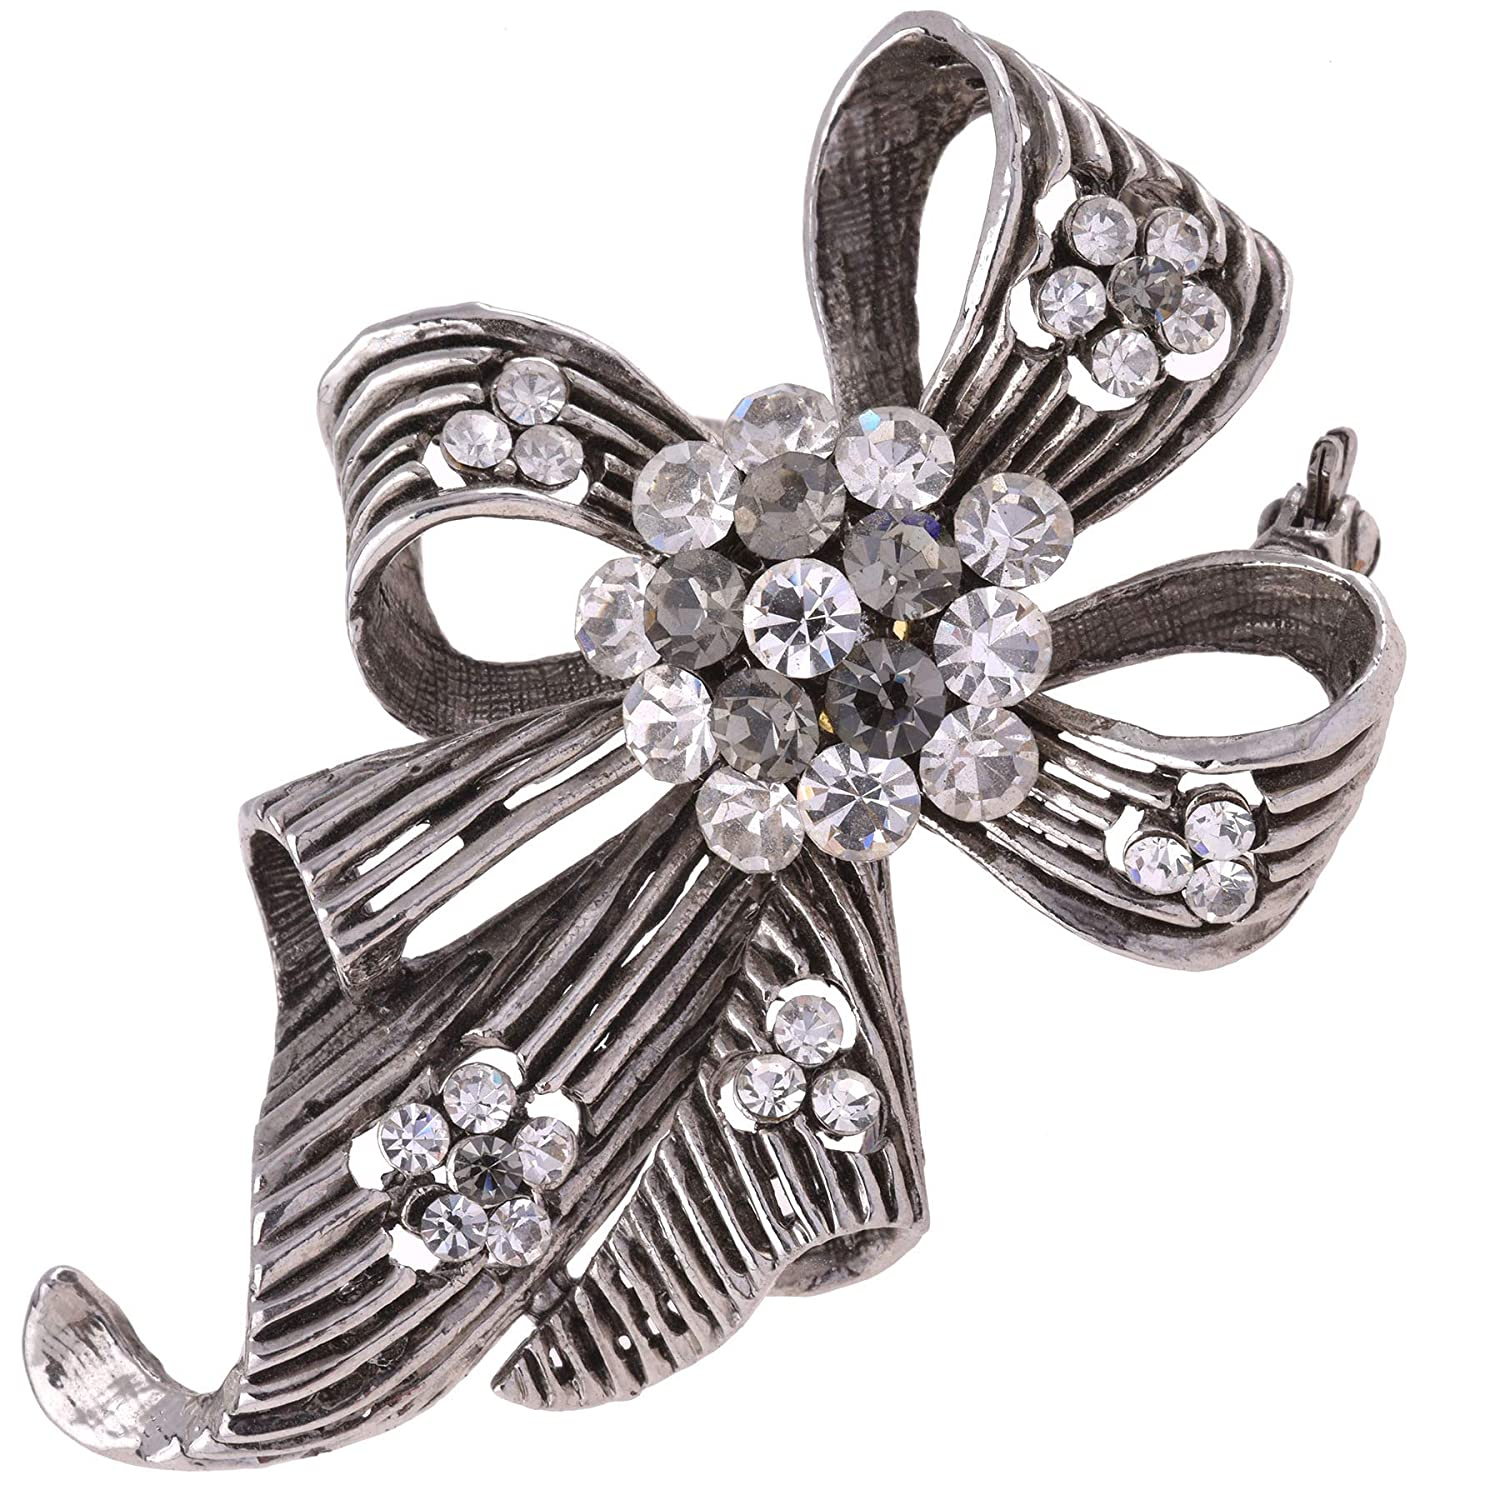 Lisa Hsieh Antique Silver Victorian Inspired Rhinestone Ribbon Bow Brooch